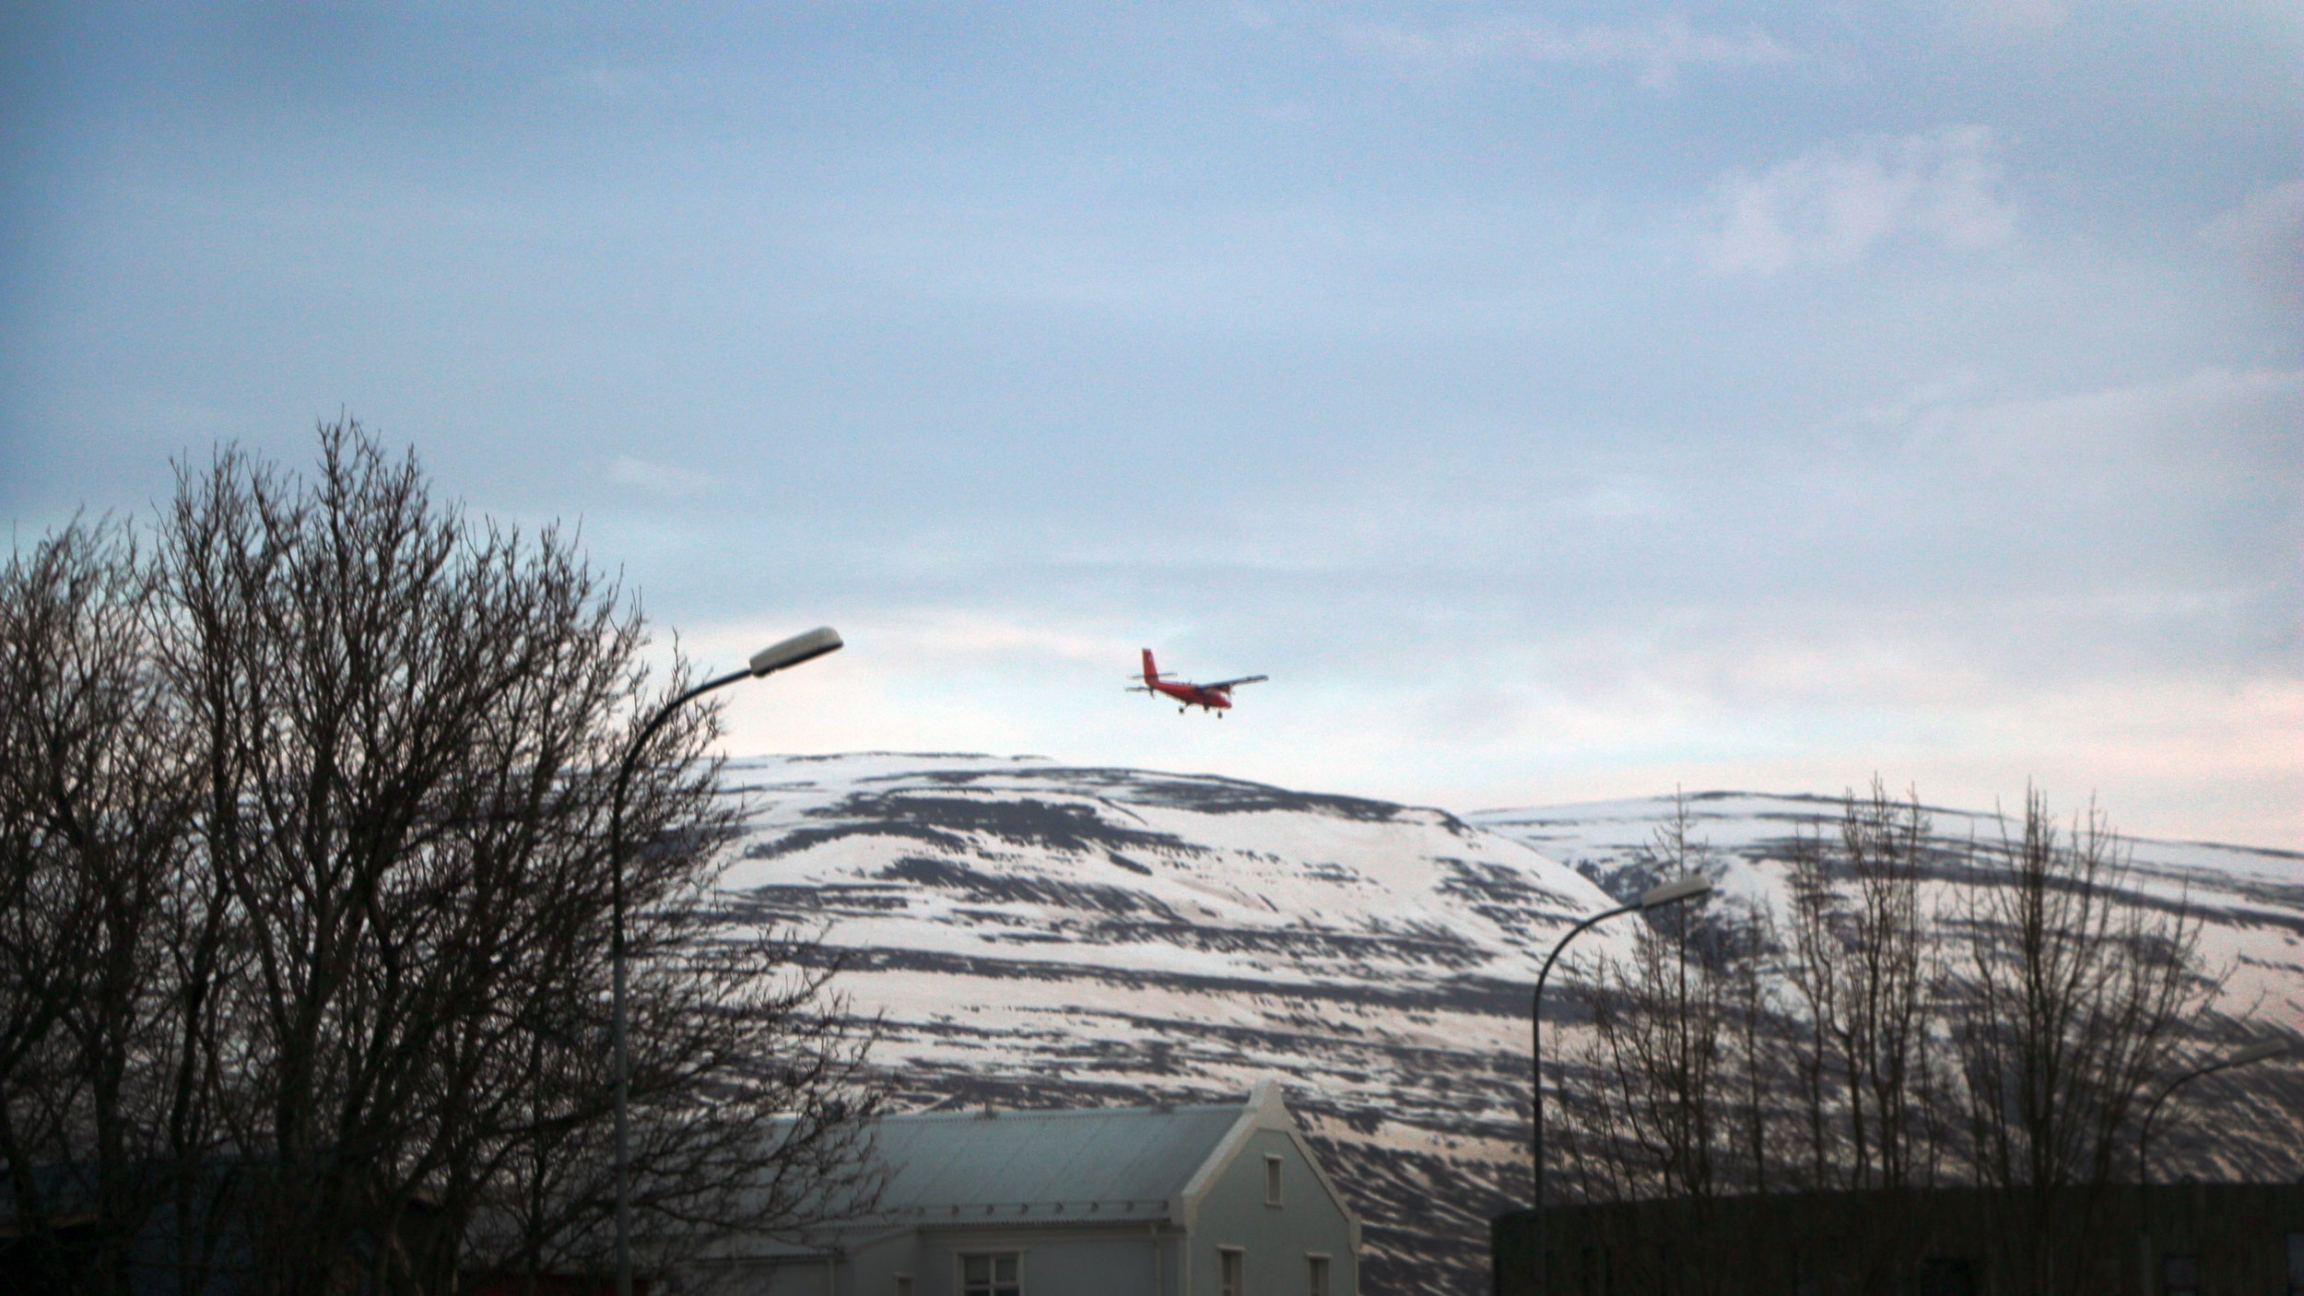 A red plane is seen in the sky above snow covered mountains and a small village